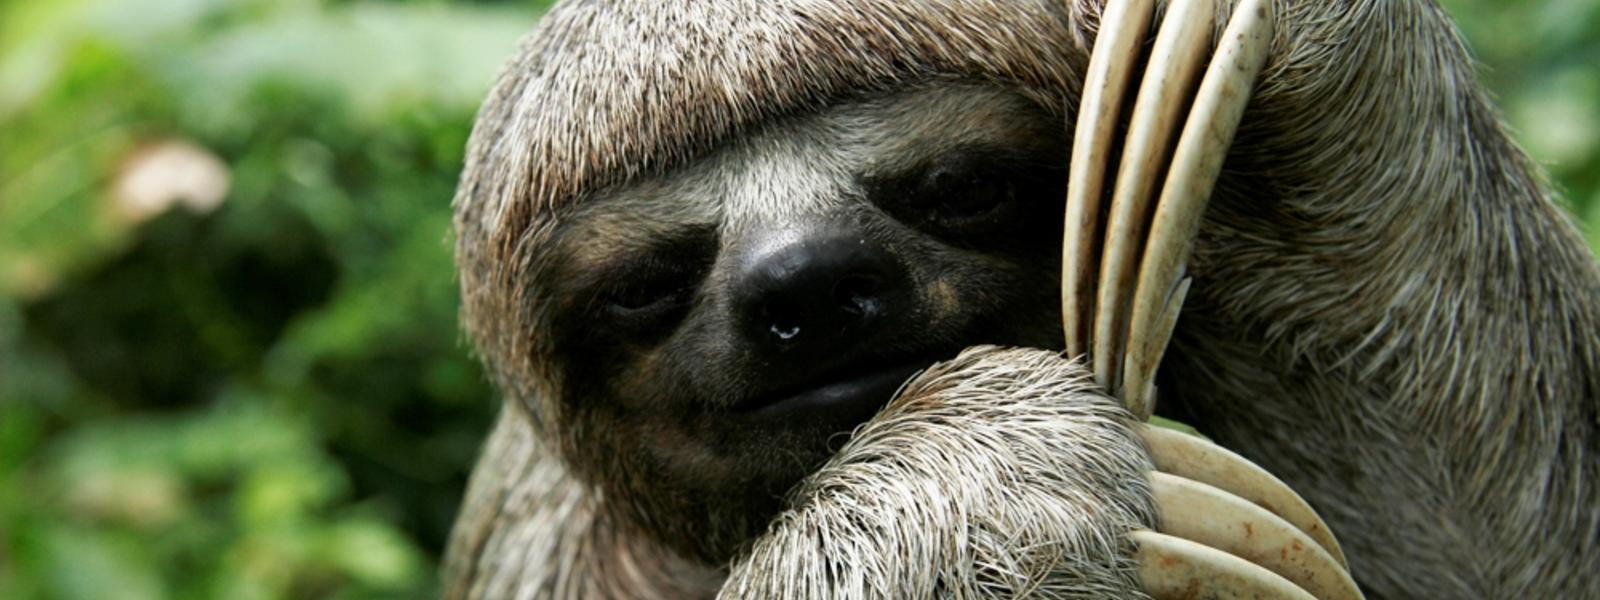 all sloth species